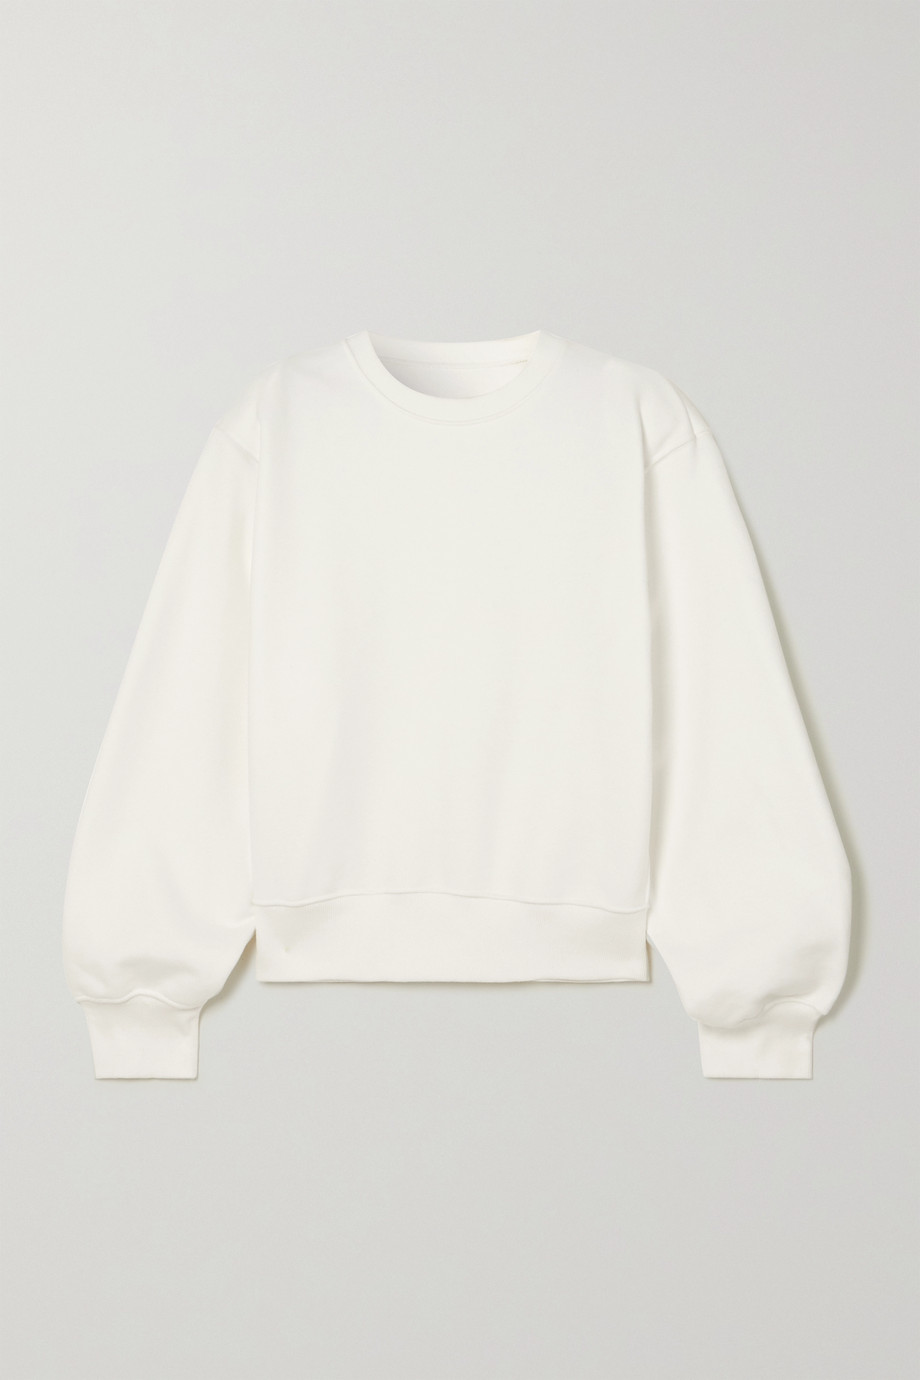 Frankie Shop Vanessa cotton-jersey sweatshirt